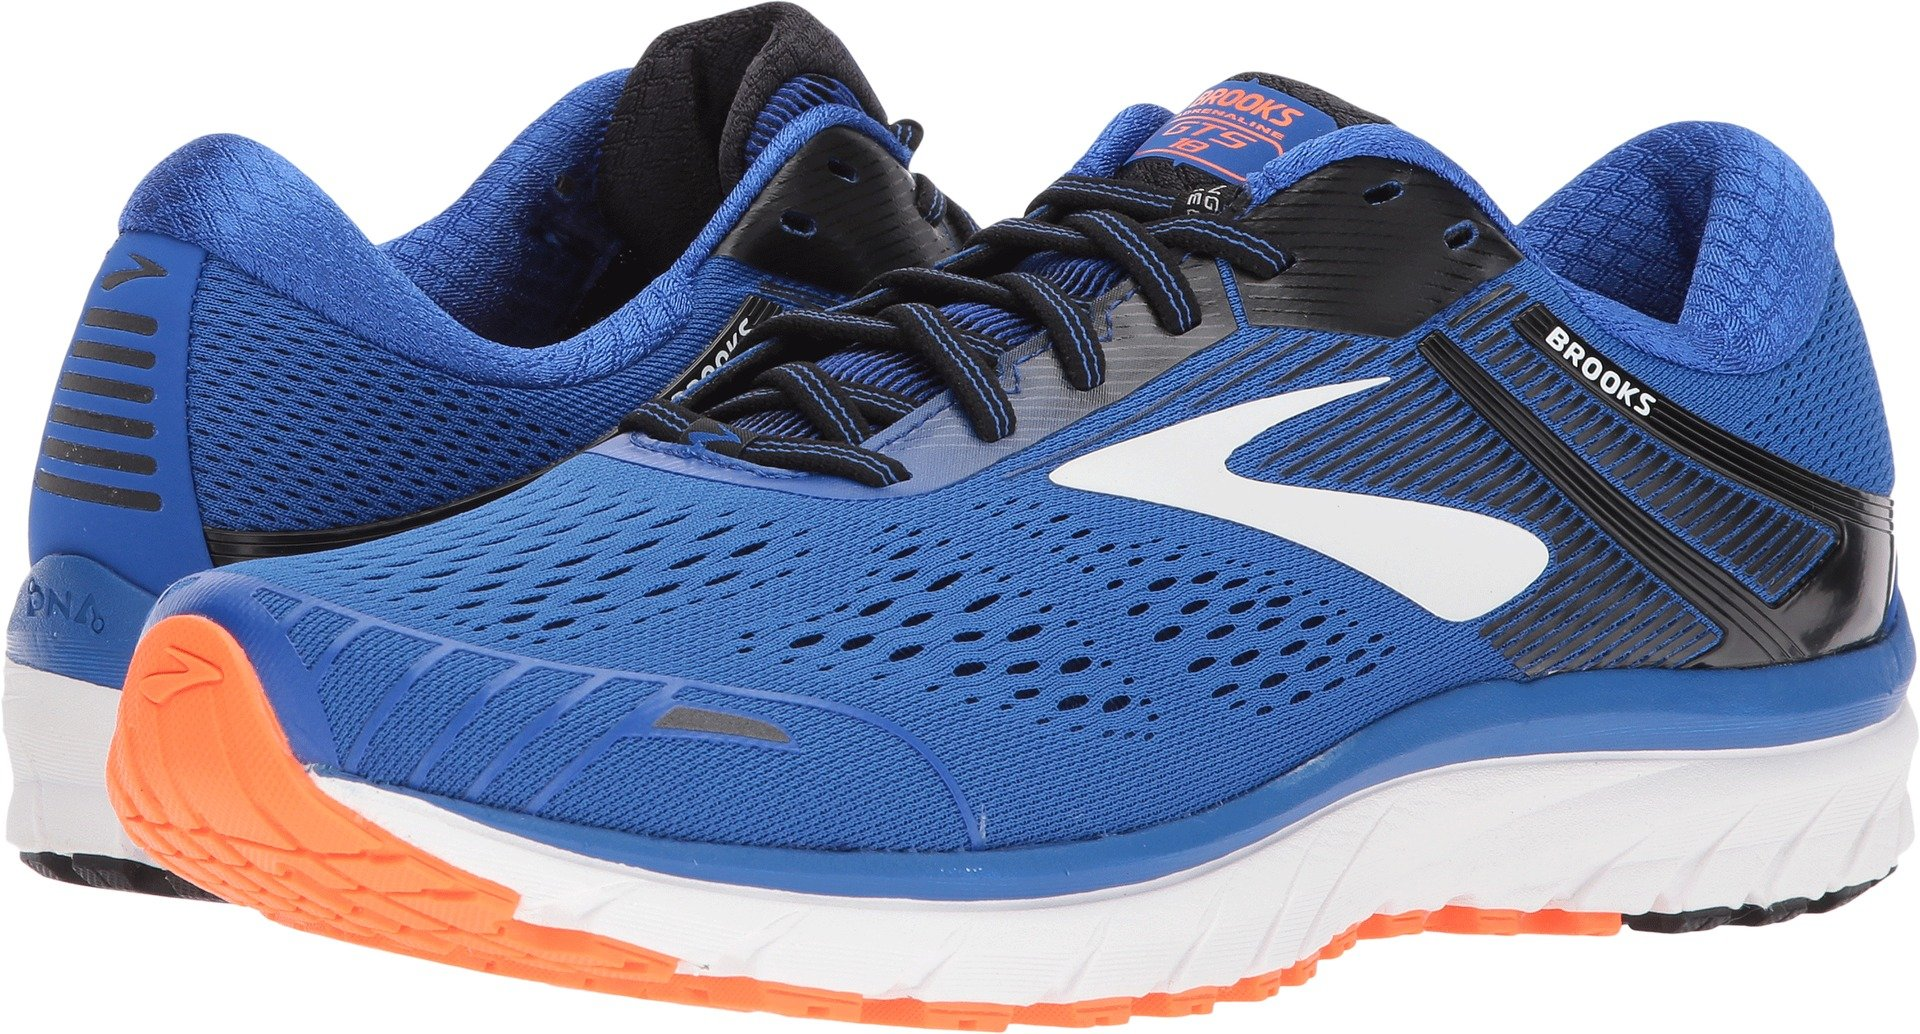 03b56015e64 Galleon - Brooks Men s Adrenaline GTS 18 Blue Black Orange 11 D US D (M)